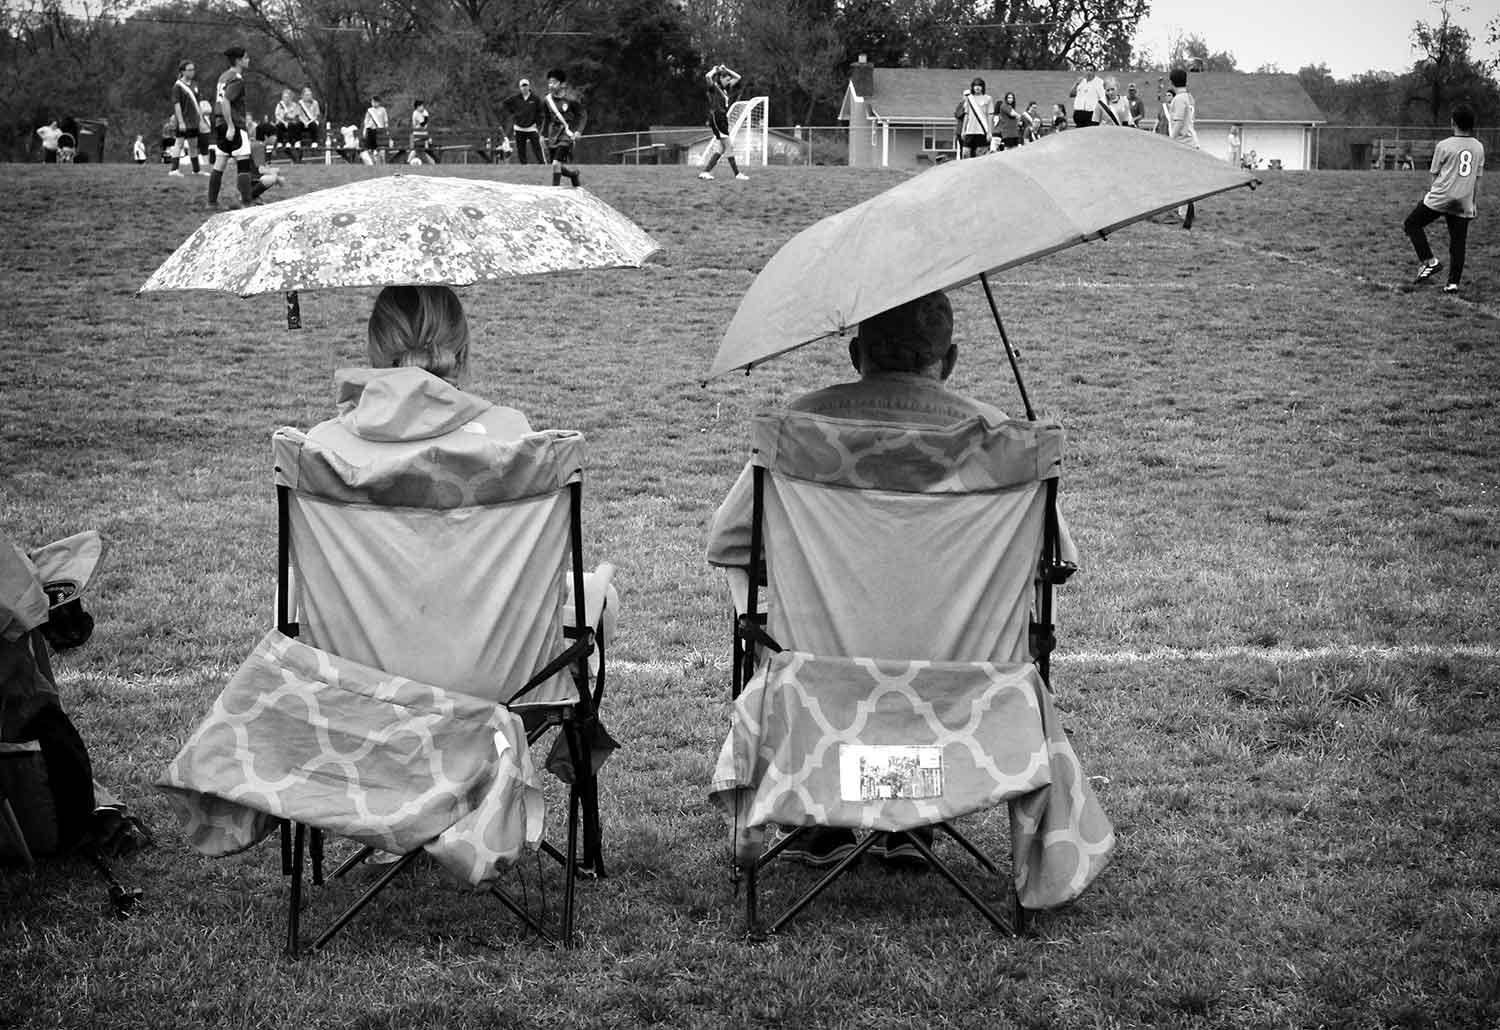 Two family members endure the rain and chilly weather as they watch a soccer game at LaFollette Elementary School. photo by Chelsea Babin - 2019